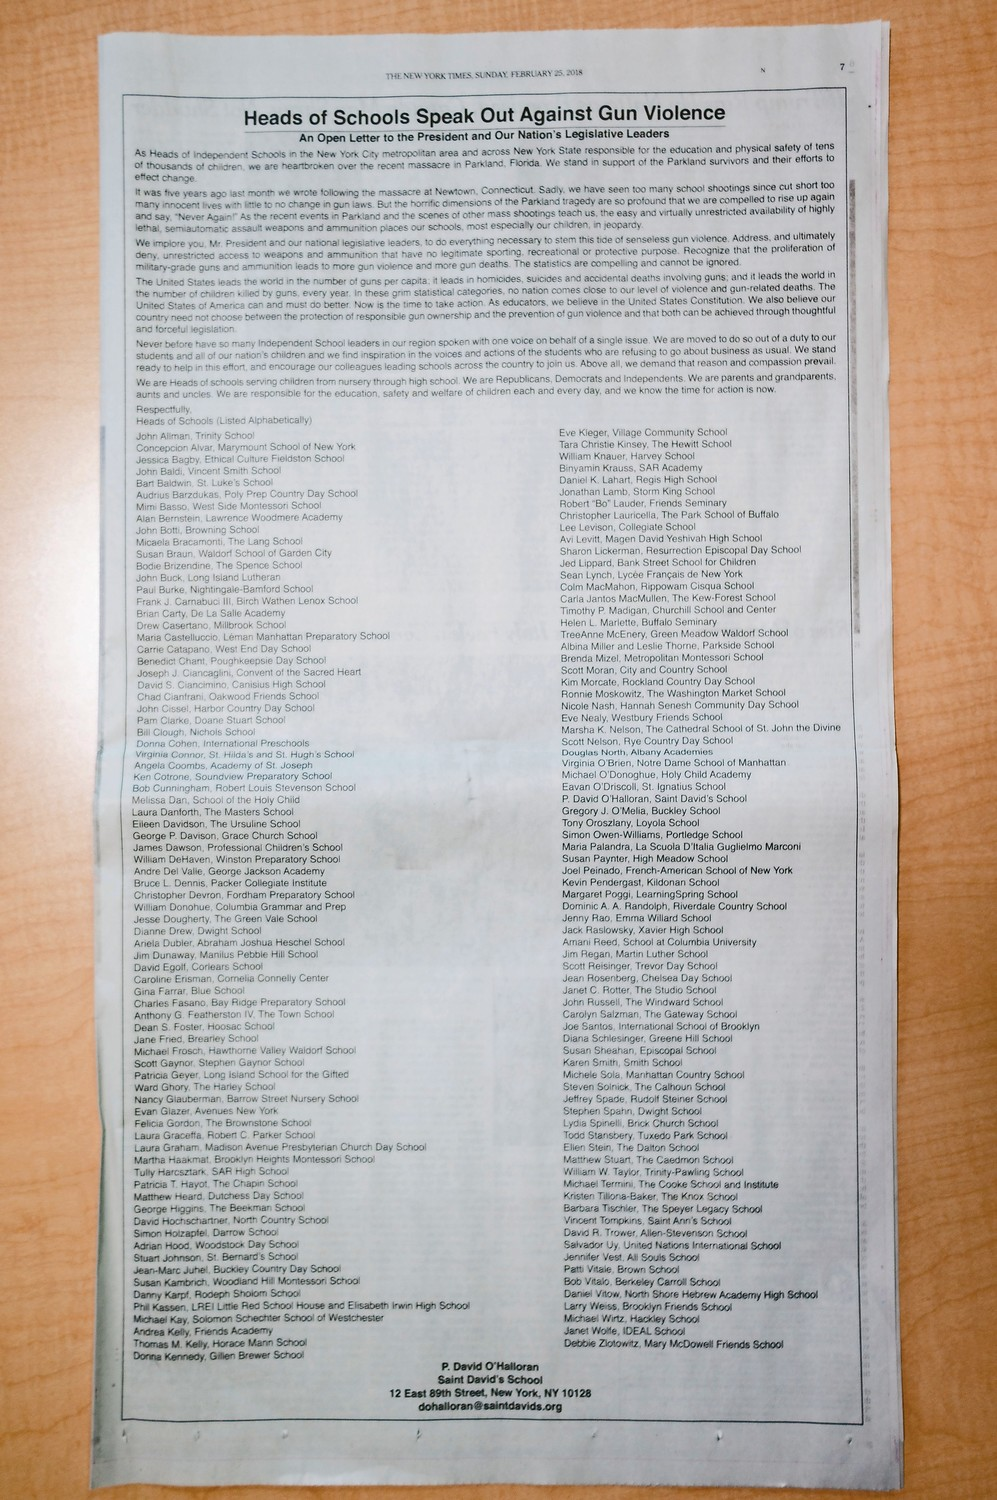 A full-page advertisement in The New York Times called on the federal government to take meaningful action to curb gun violence.